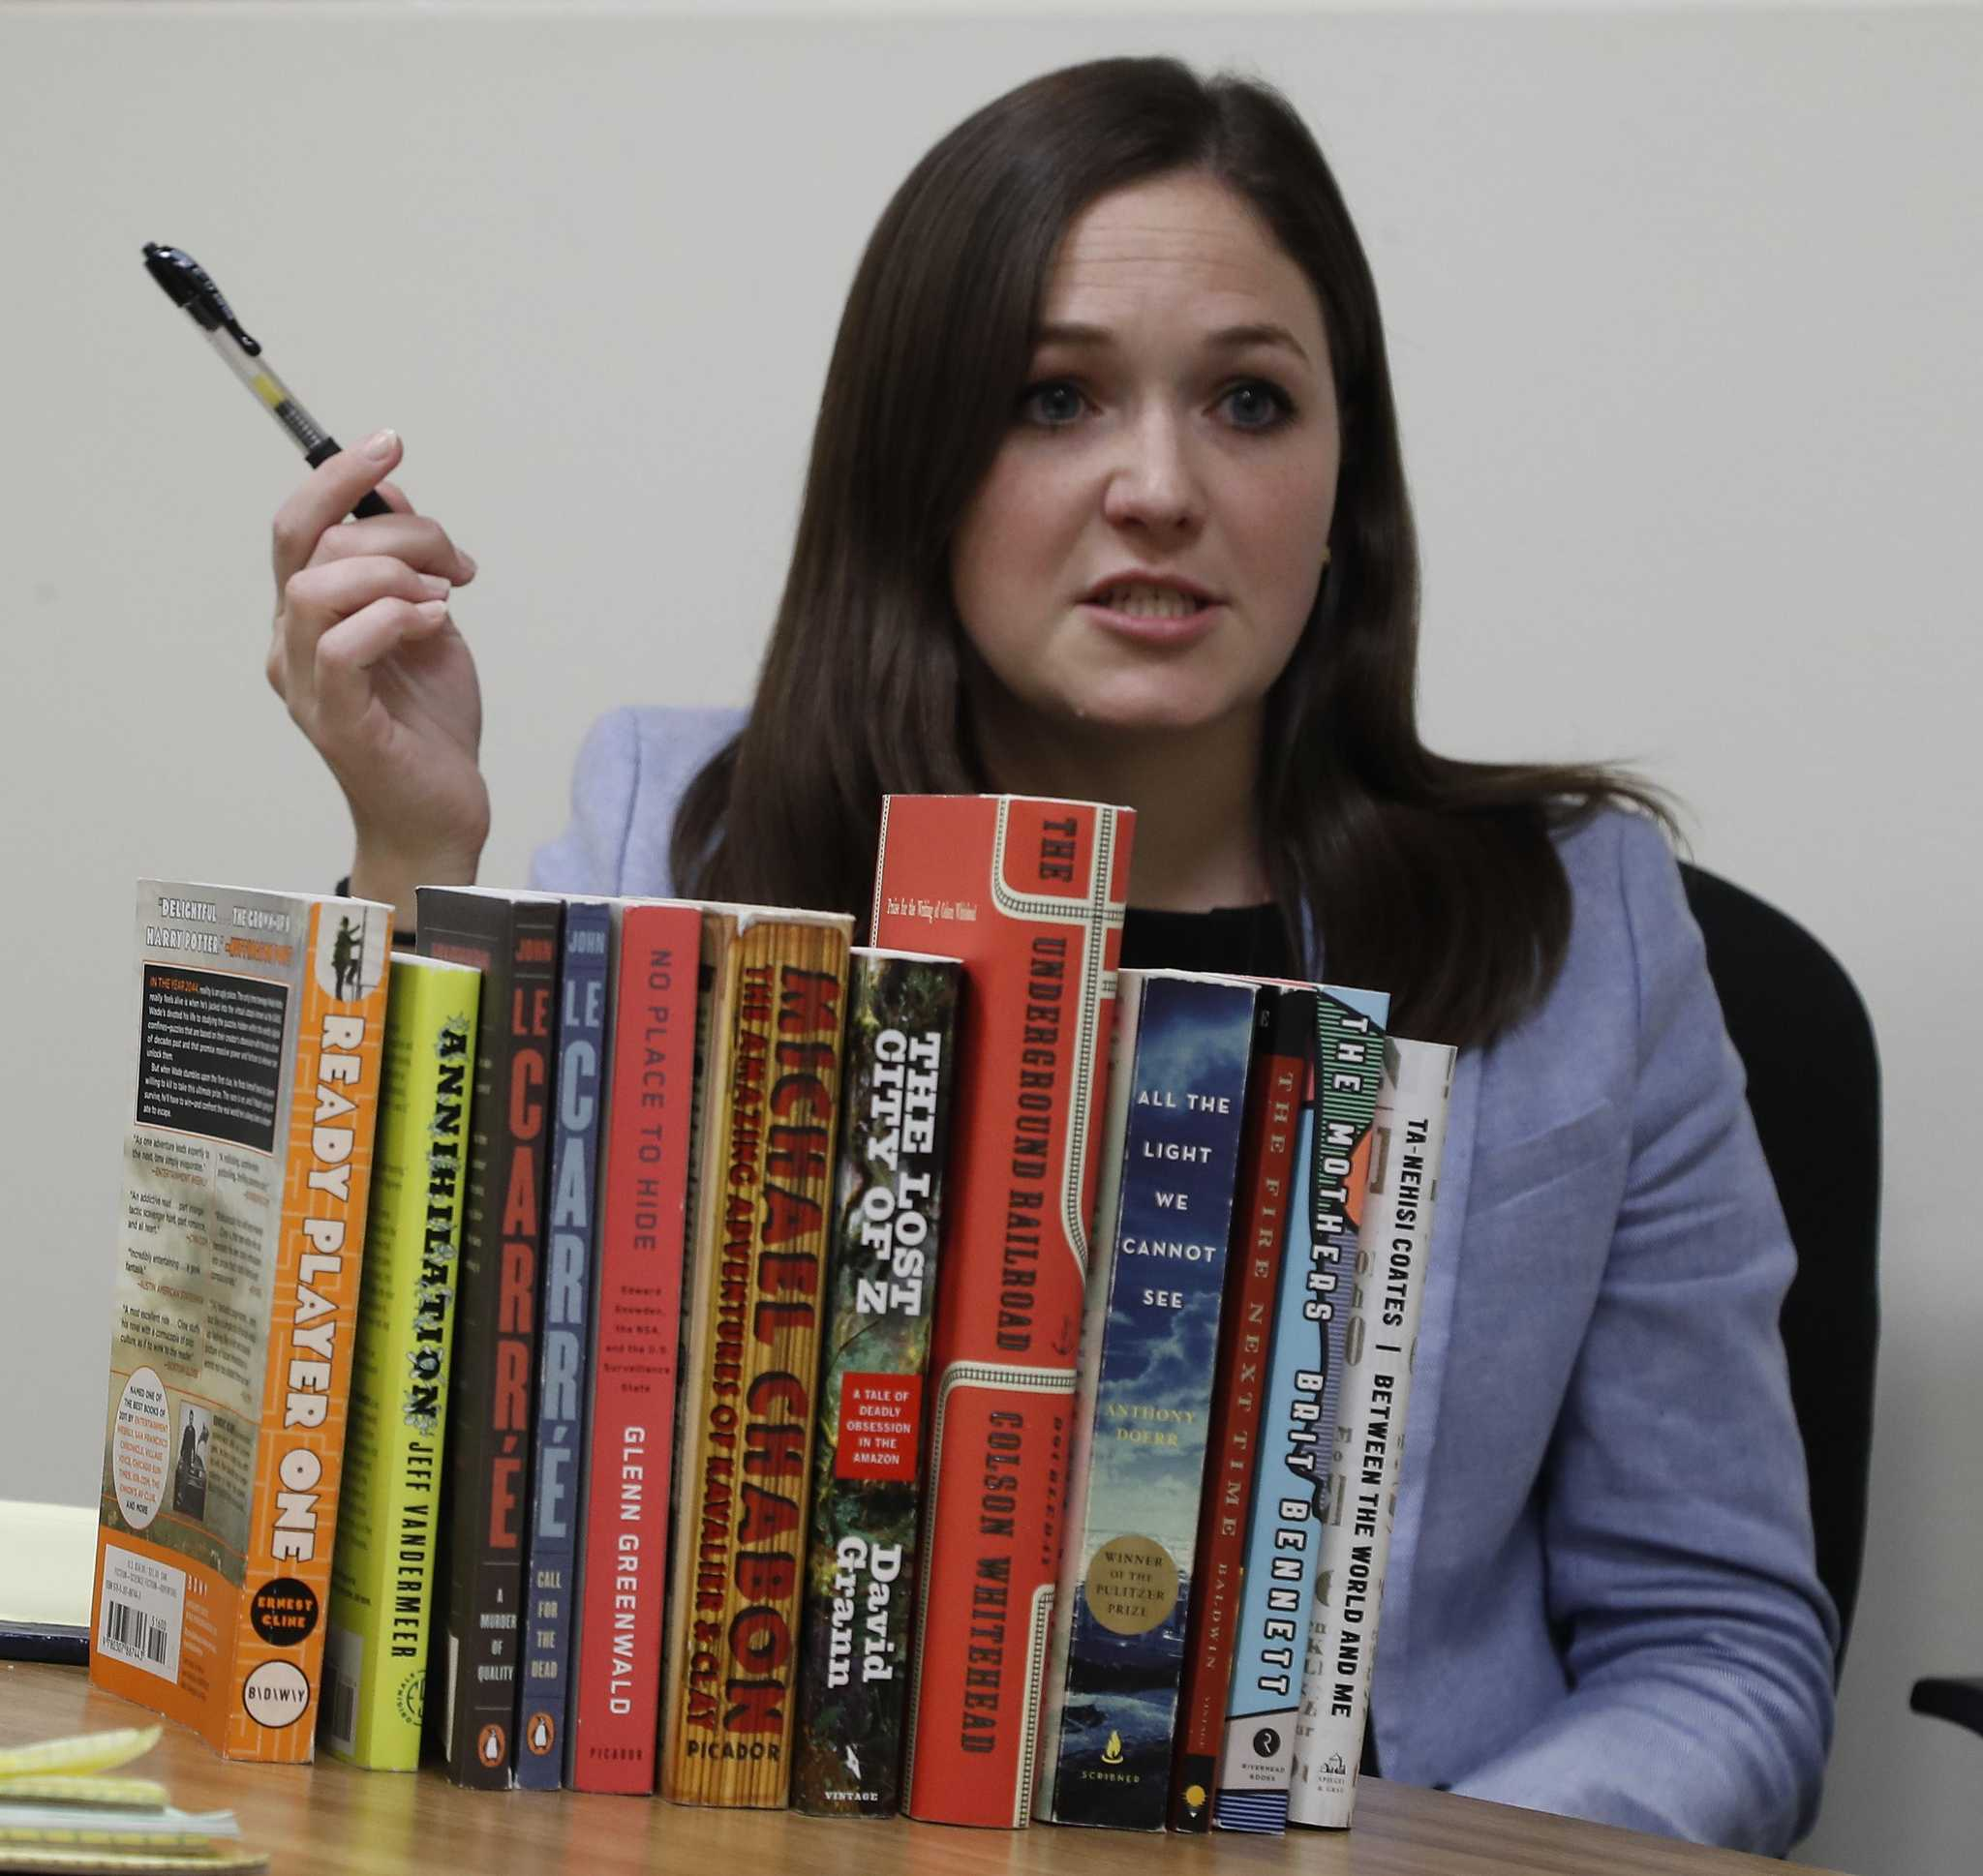 Meet the Harris County public defender who's crowdfunding books for her clients